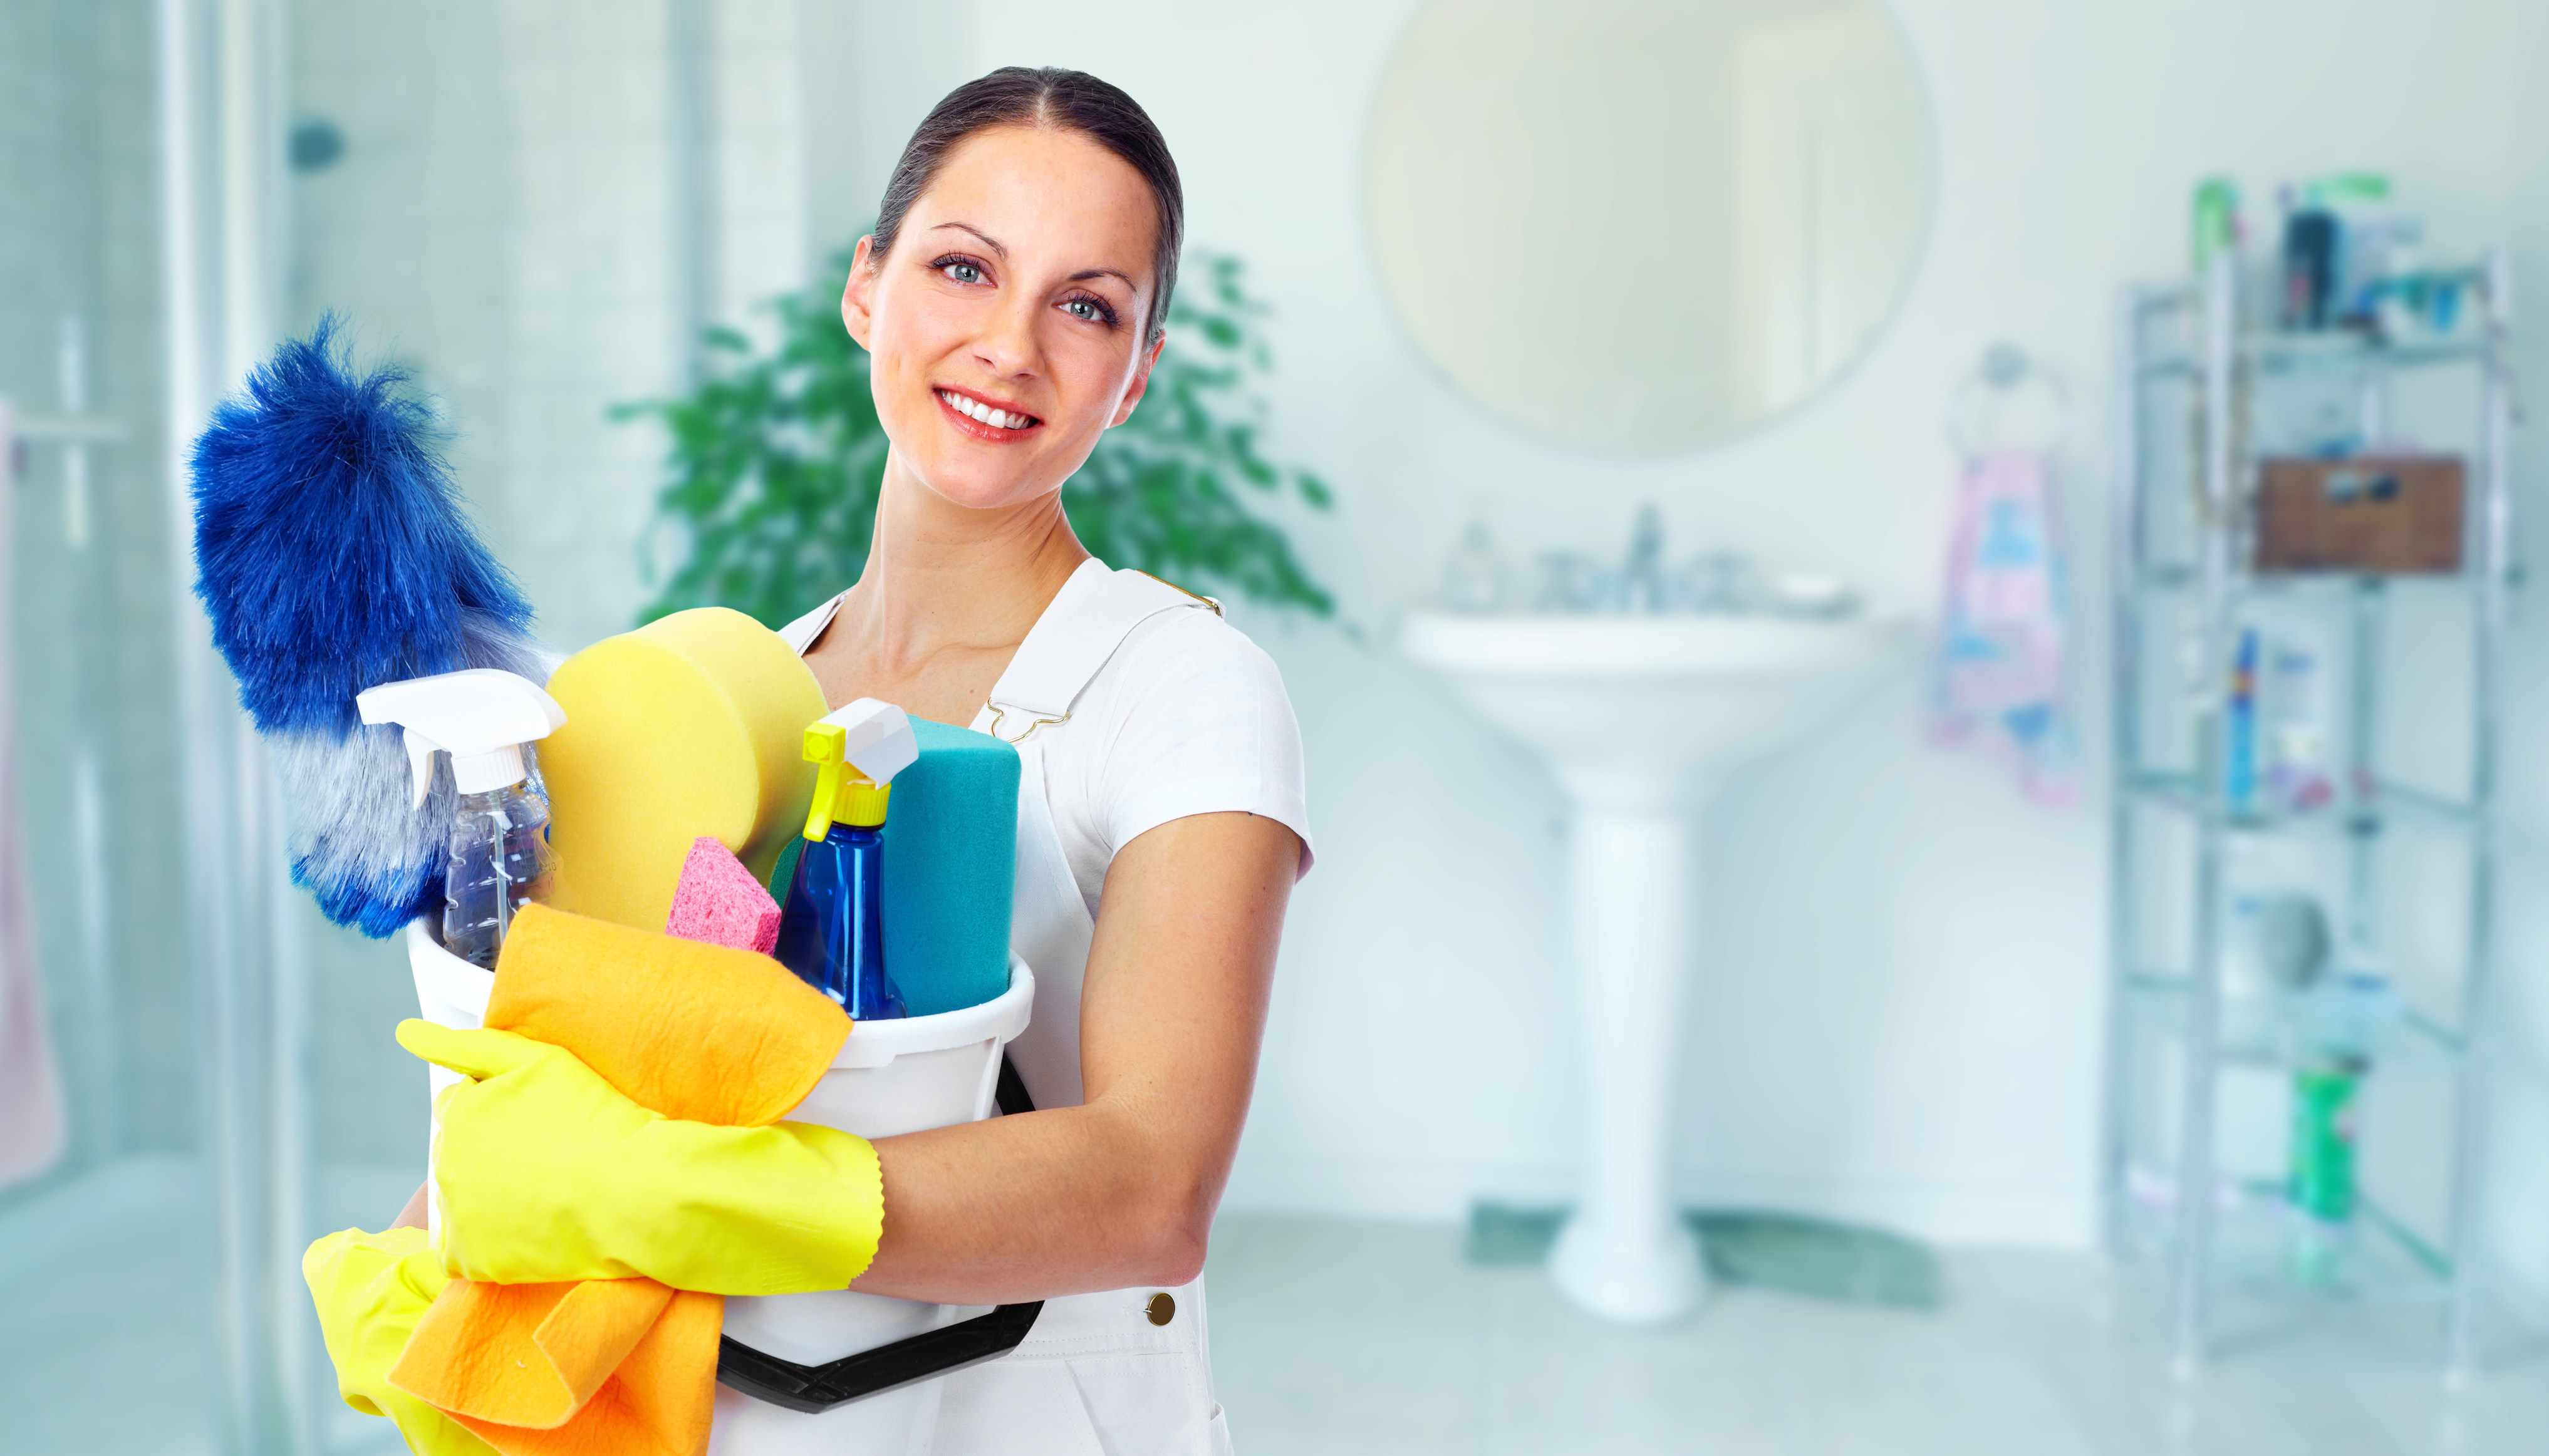 Adriana Cleaning Service – Cleaning Company